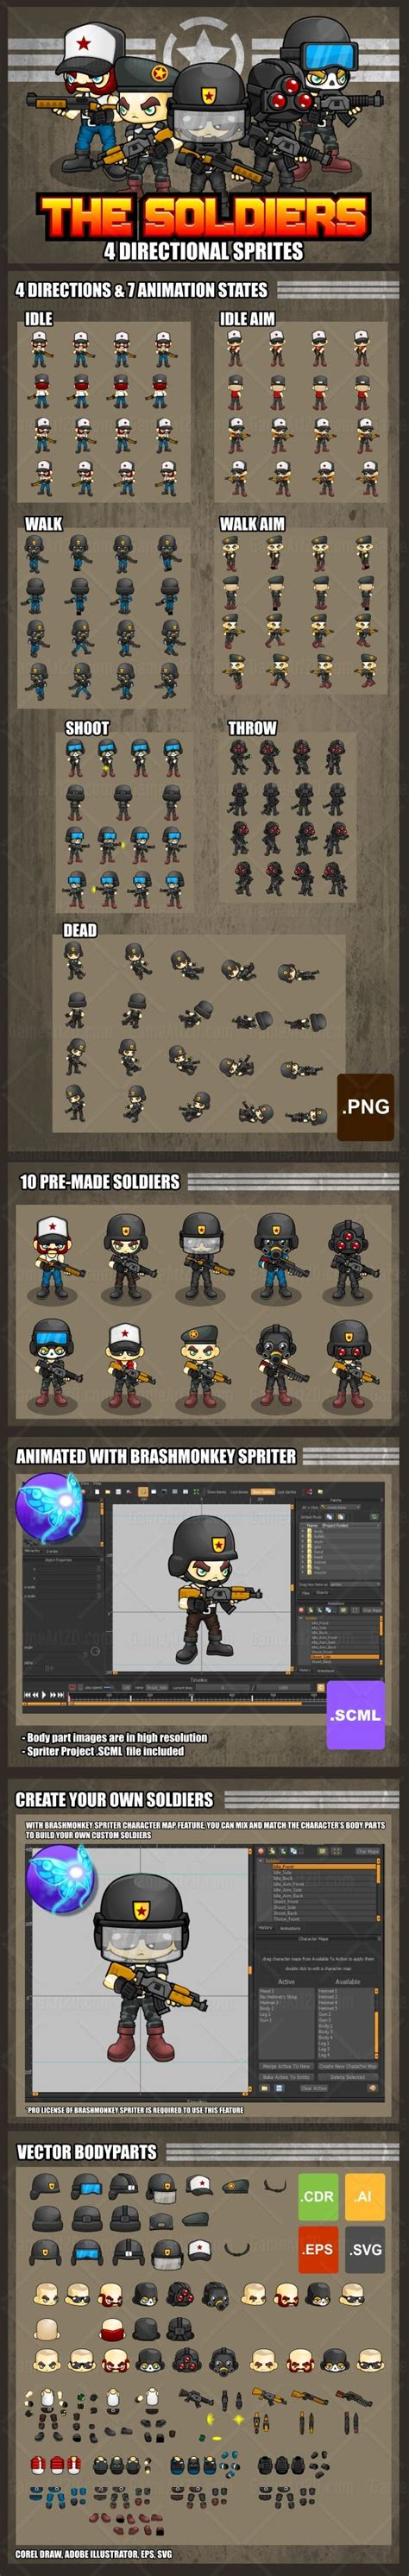 A Collection Of Soldier Sprites For Creating A 2d Top Down